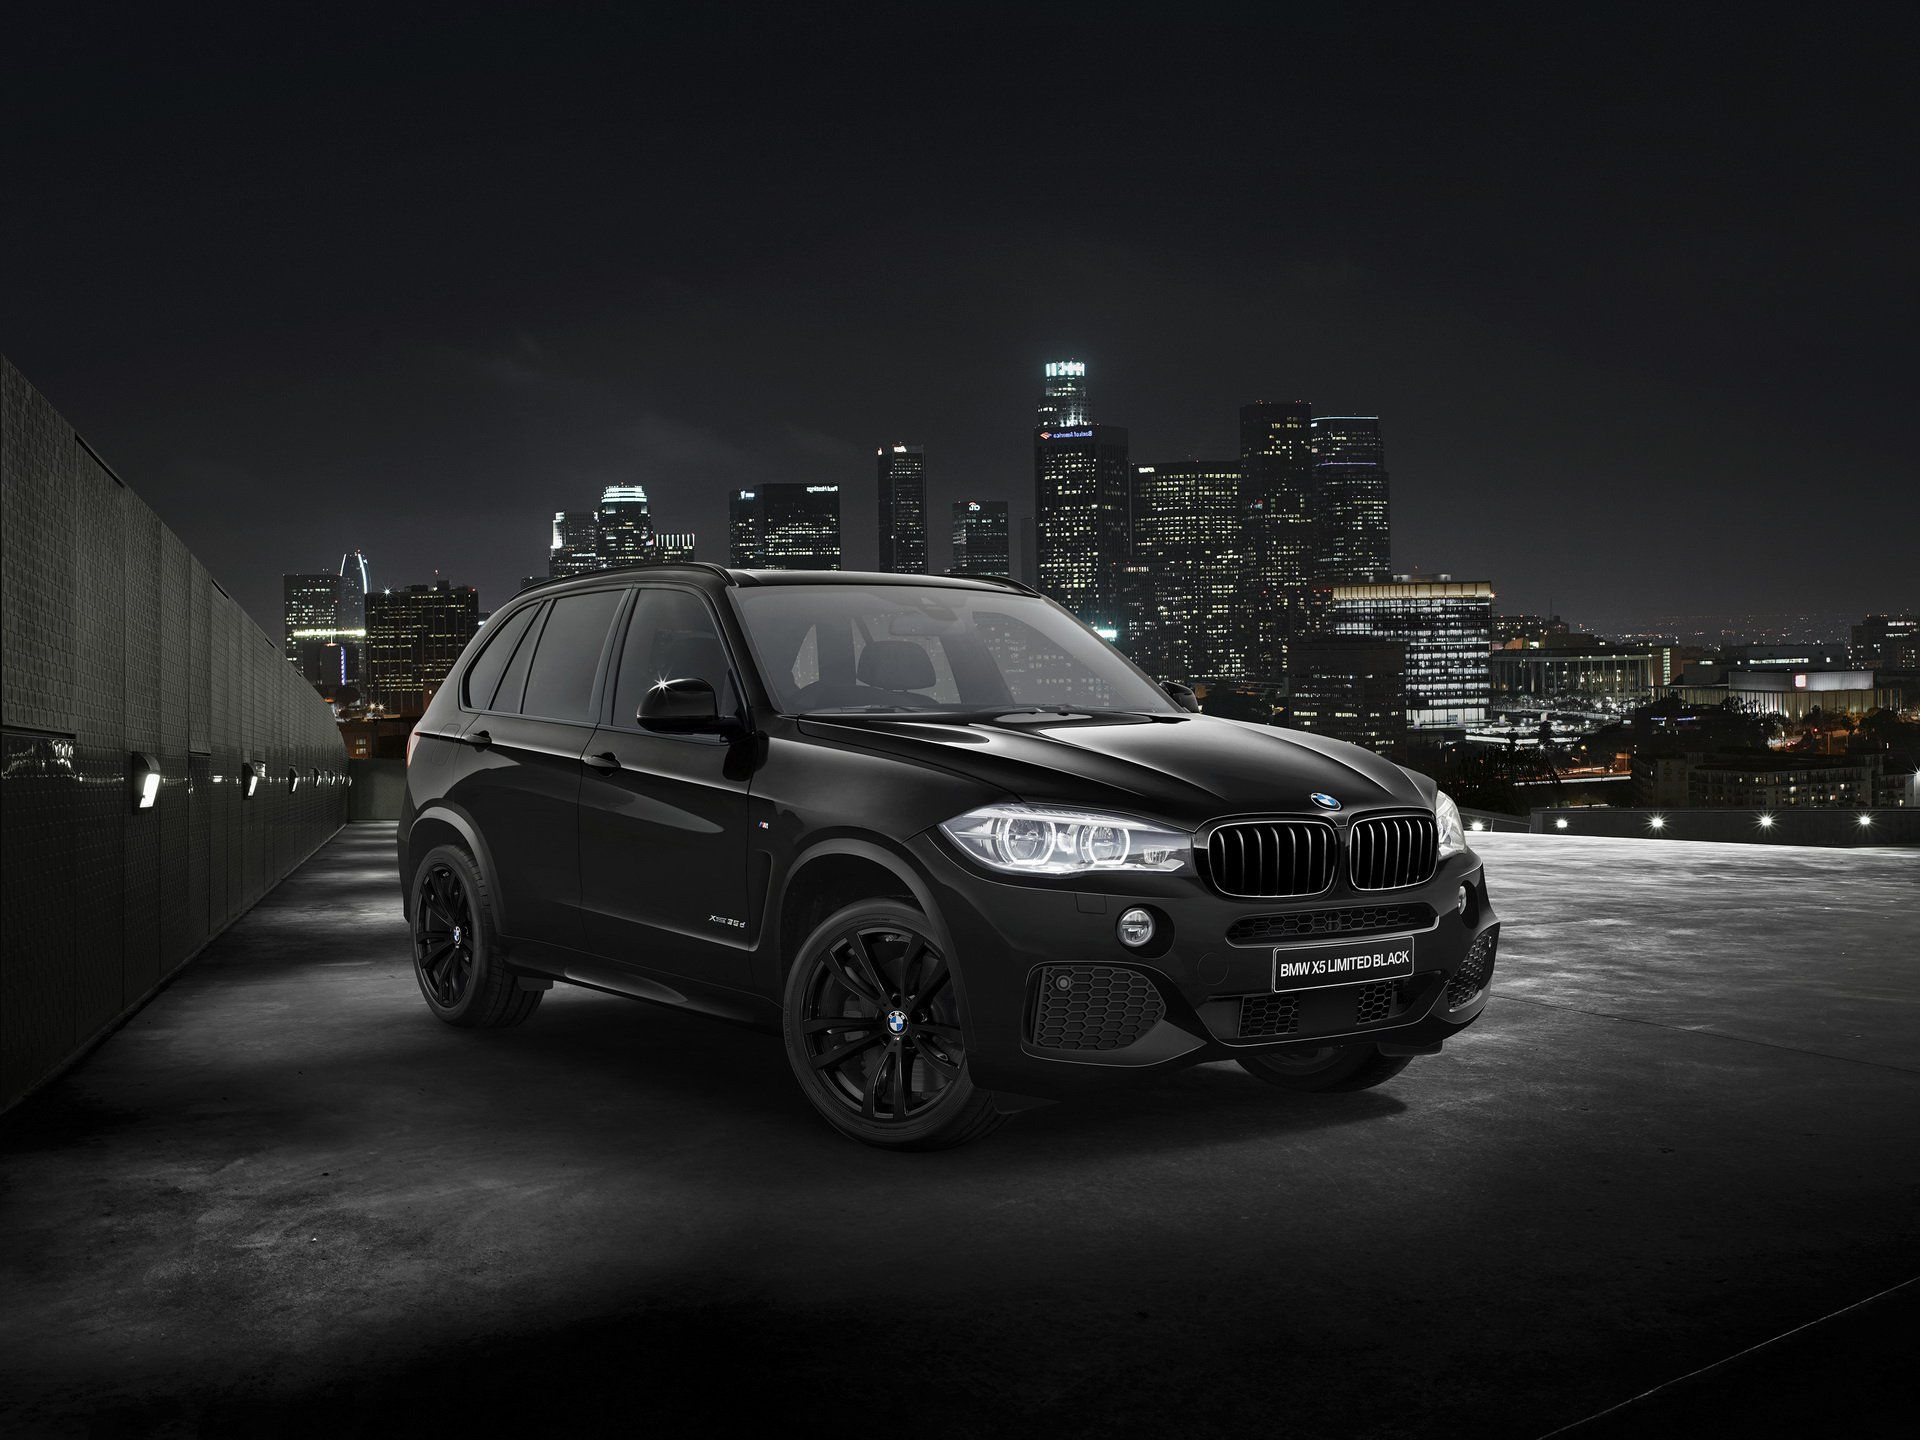 Bmw Japan Sends Off Previous X5 With Limited Black And White